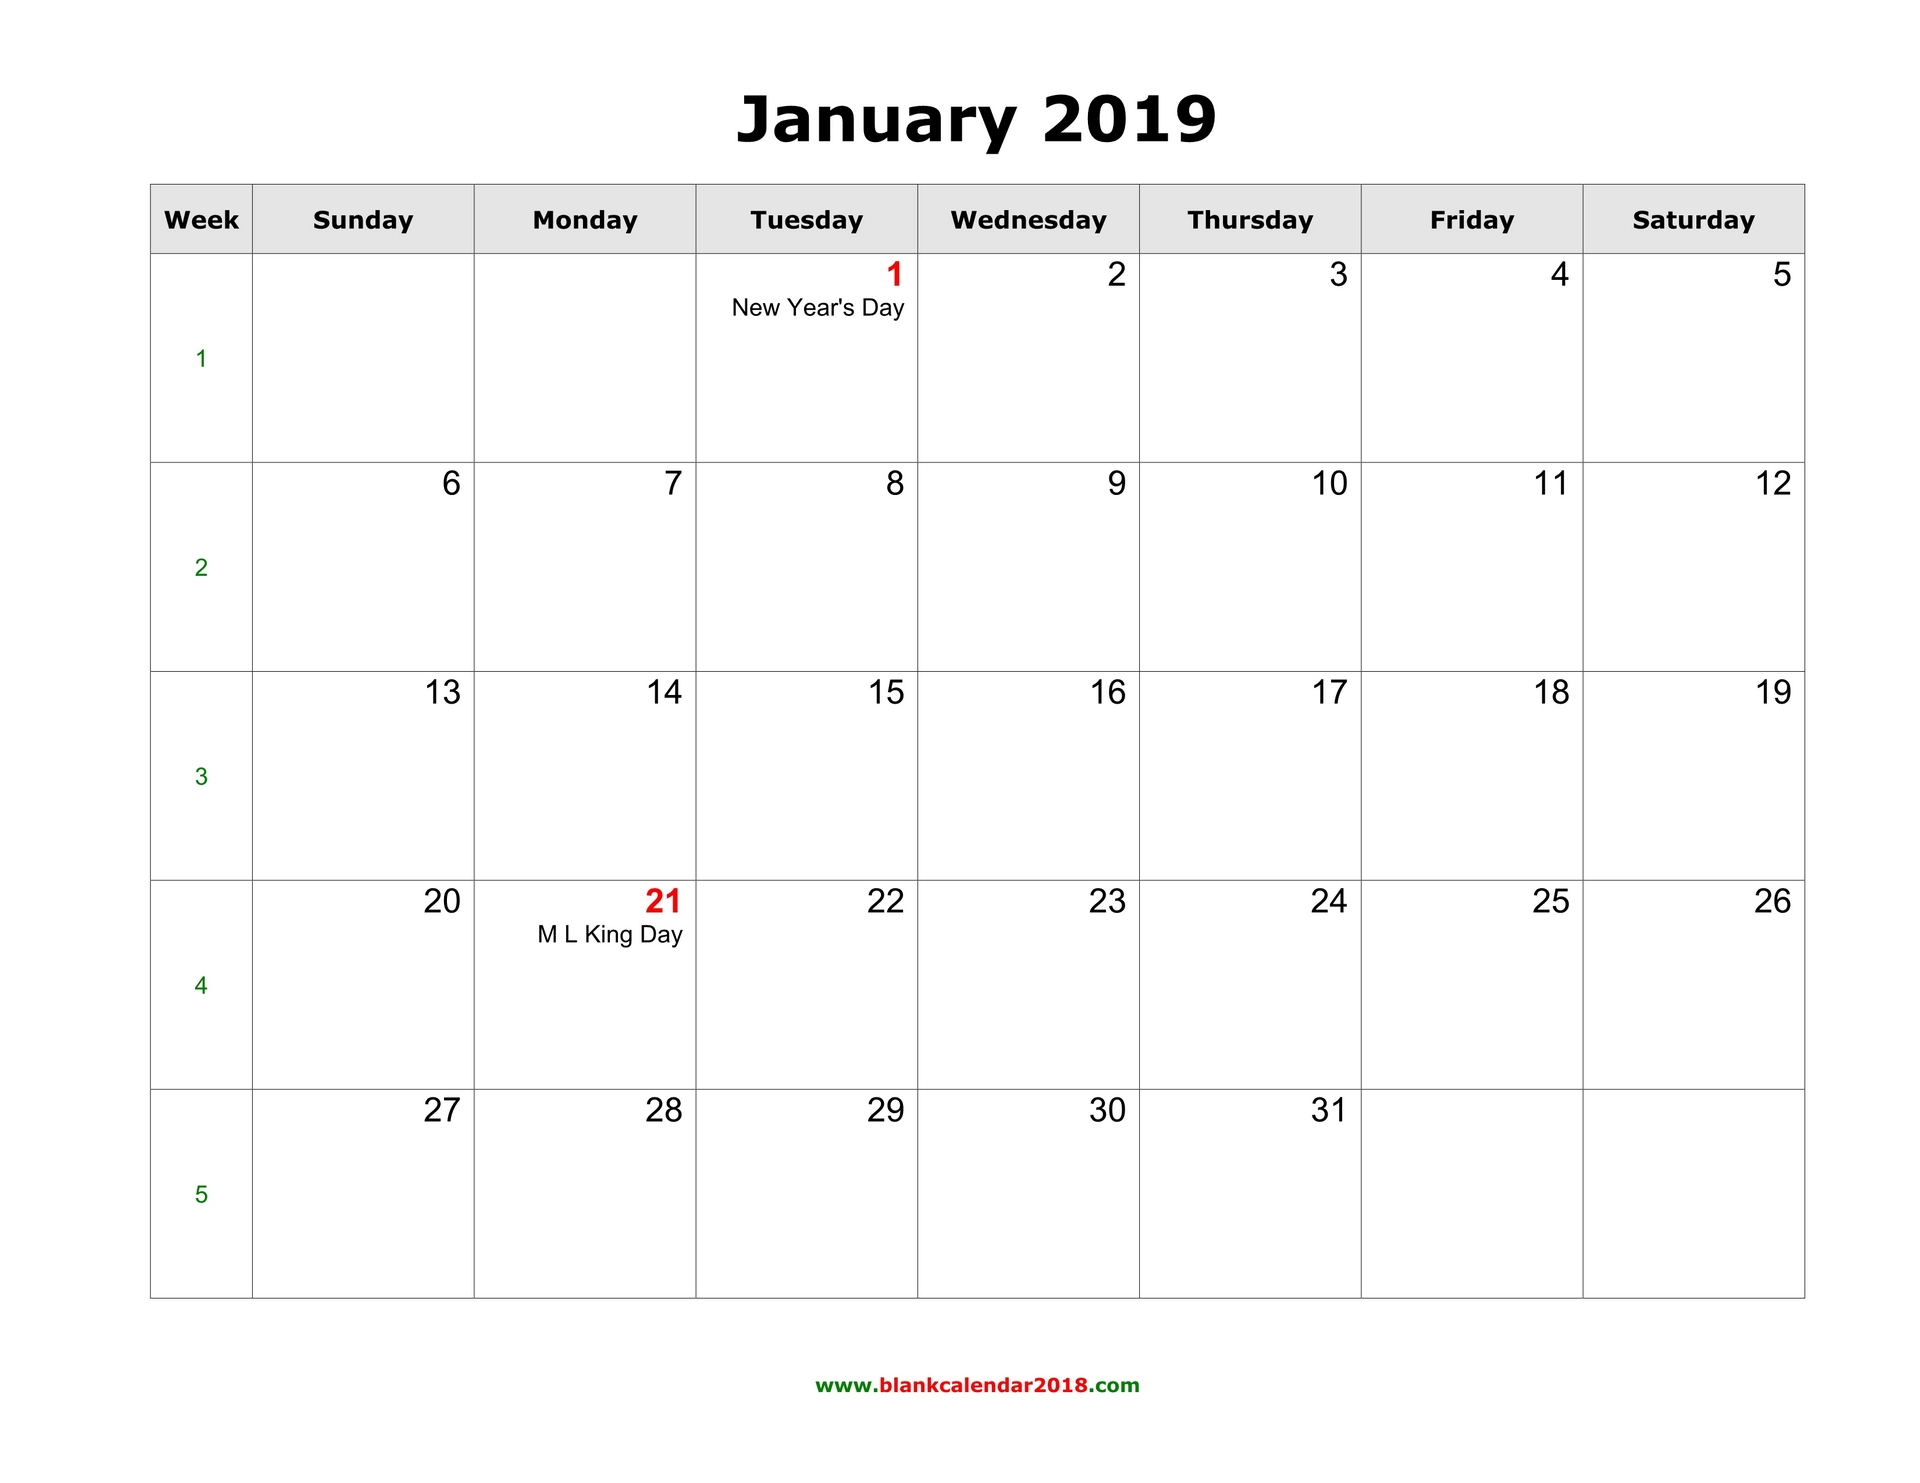 Microsoft Word Calendar Template 2019 Blank Calendar for January 2019